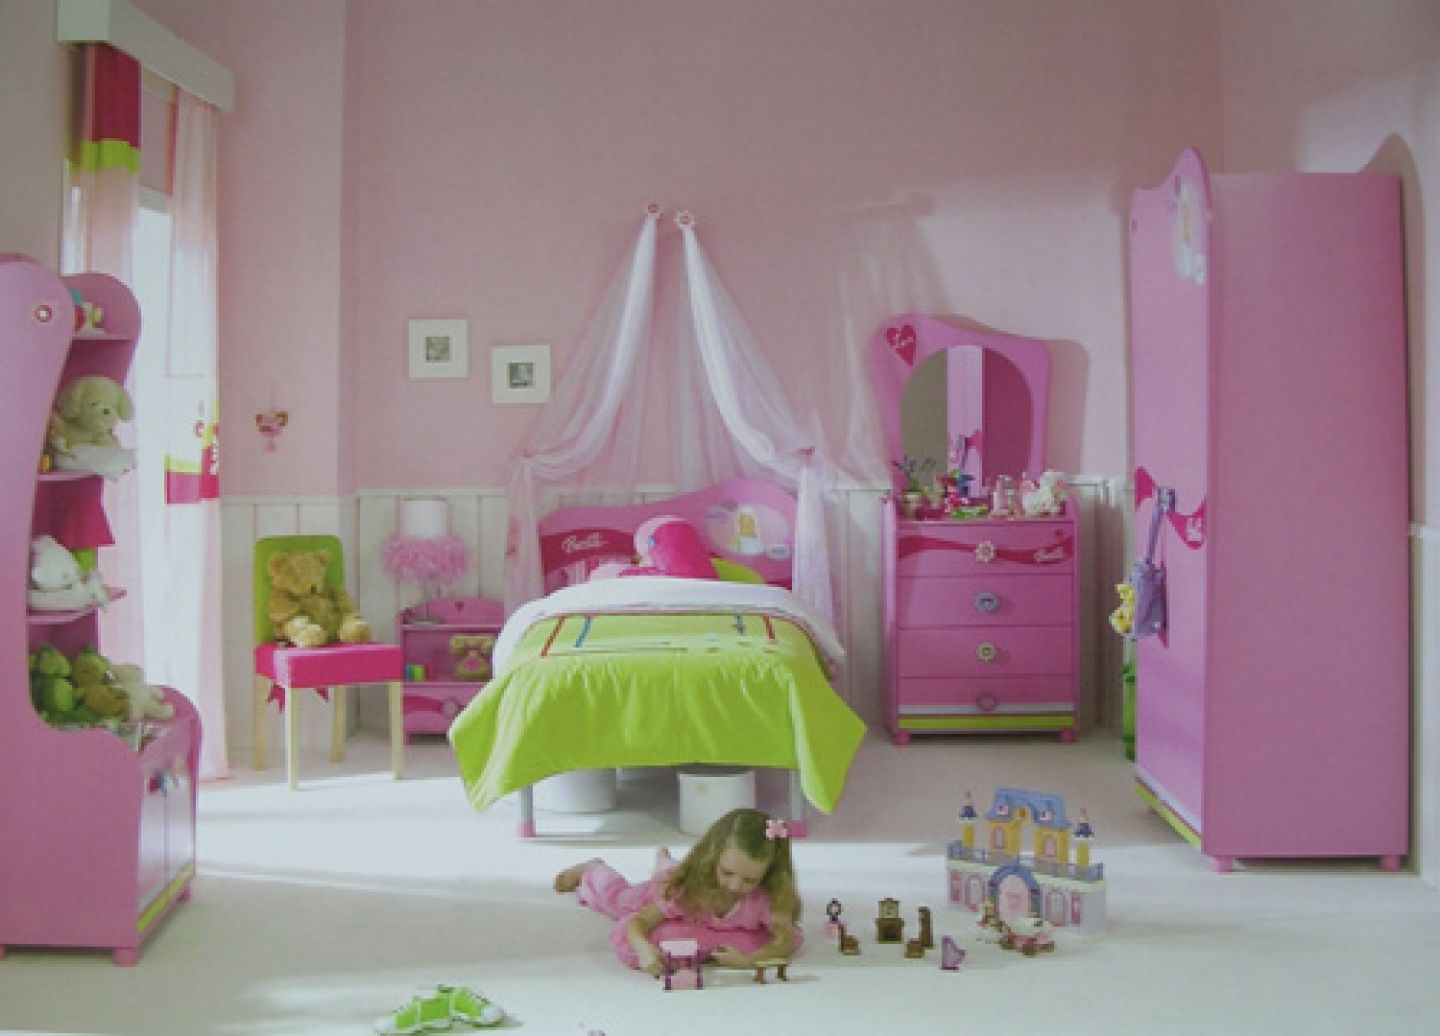 kids bedroom ideas kids bedroom pinky decoration inspiration girls bedroom sets decorating ideas for little - Children Bedroom Decorating Ideas